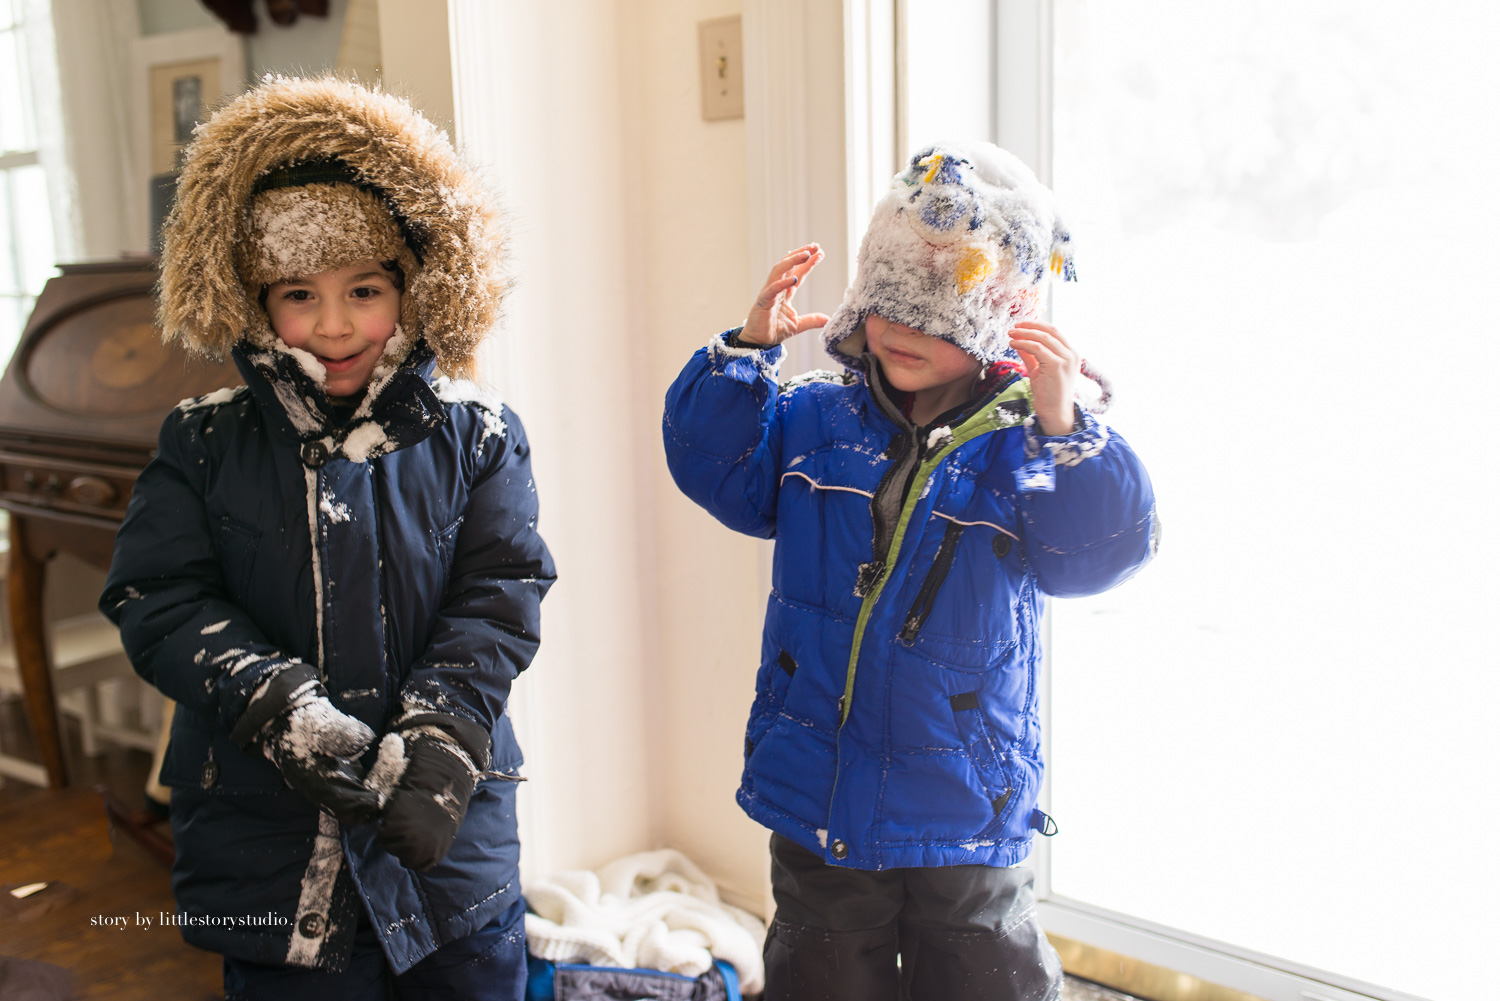 They were the last two to come in the house, matted with snow and sporting rosy cheeks. When they were little, I took for granted all the days they could have impromptu playdates at each other's house. Now that they are in school, I'll take any excuse to give them some much need quality playtime.